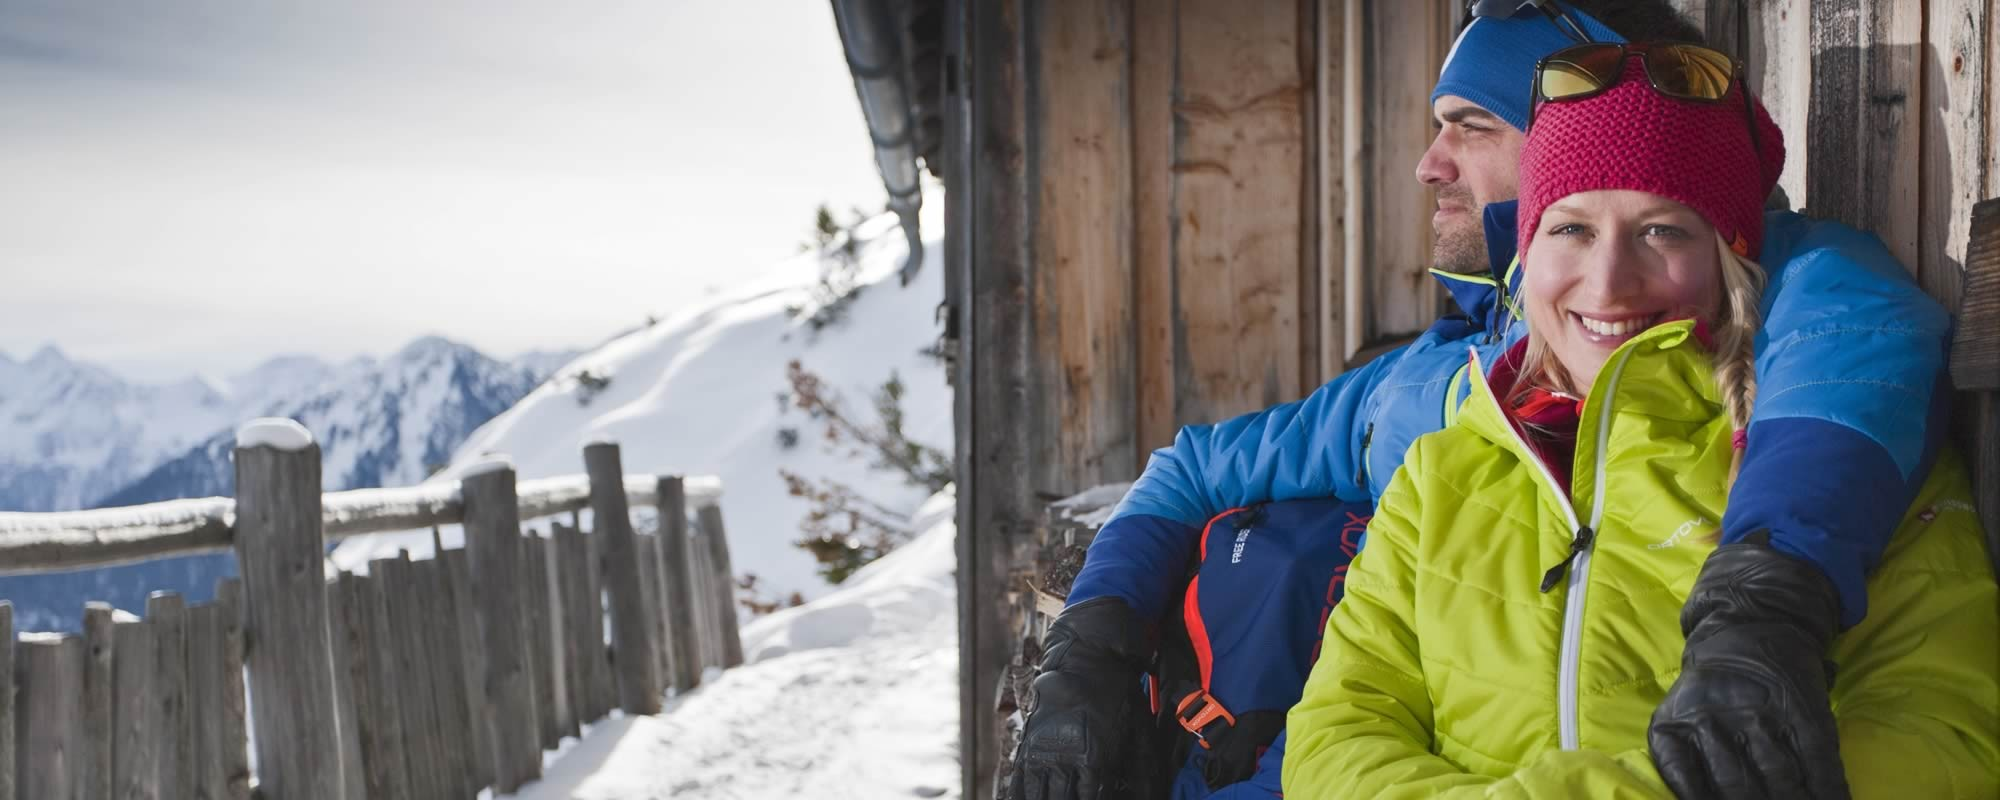 Couple at a mountain hut in winter in Schladming